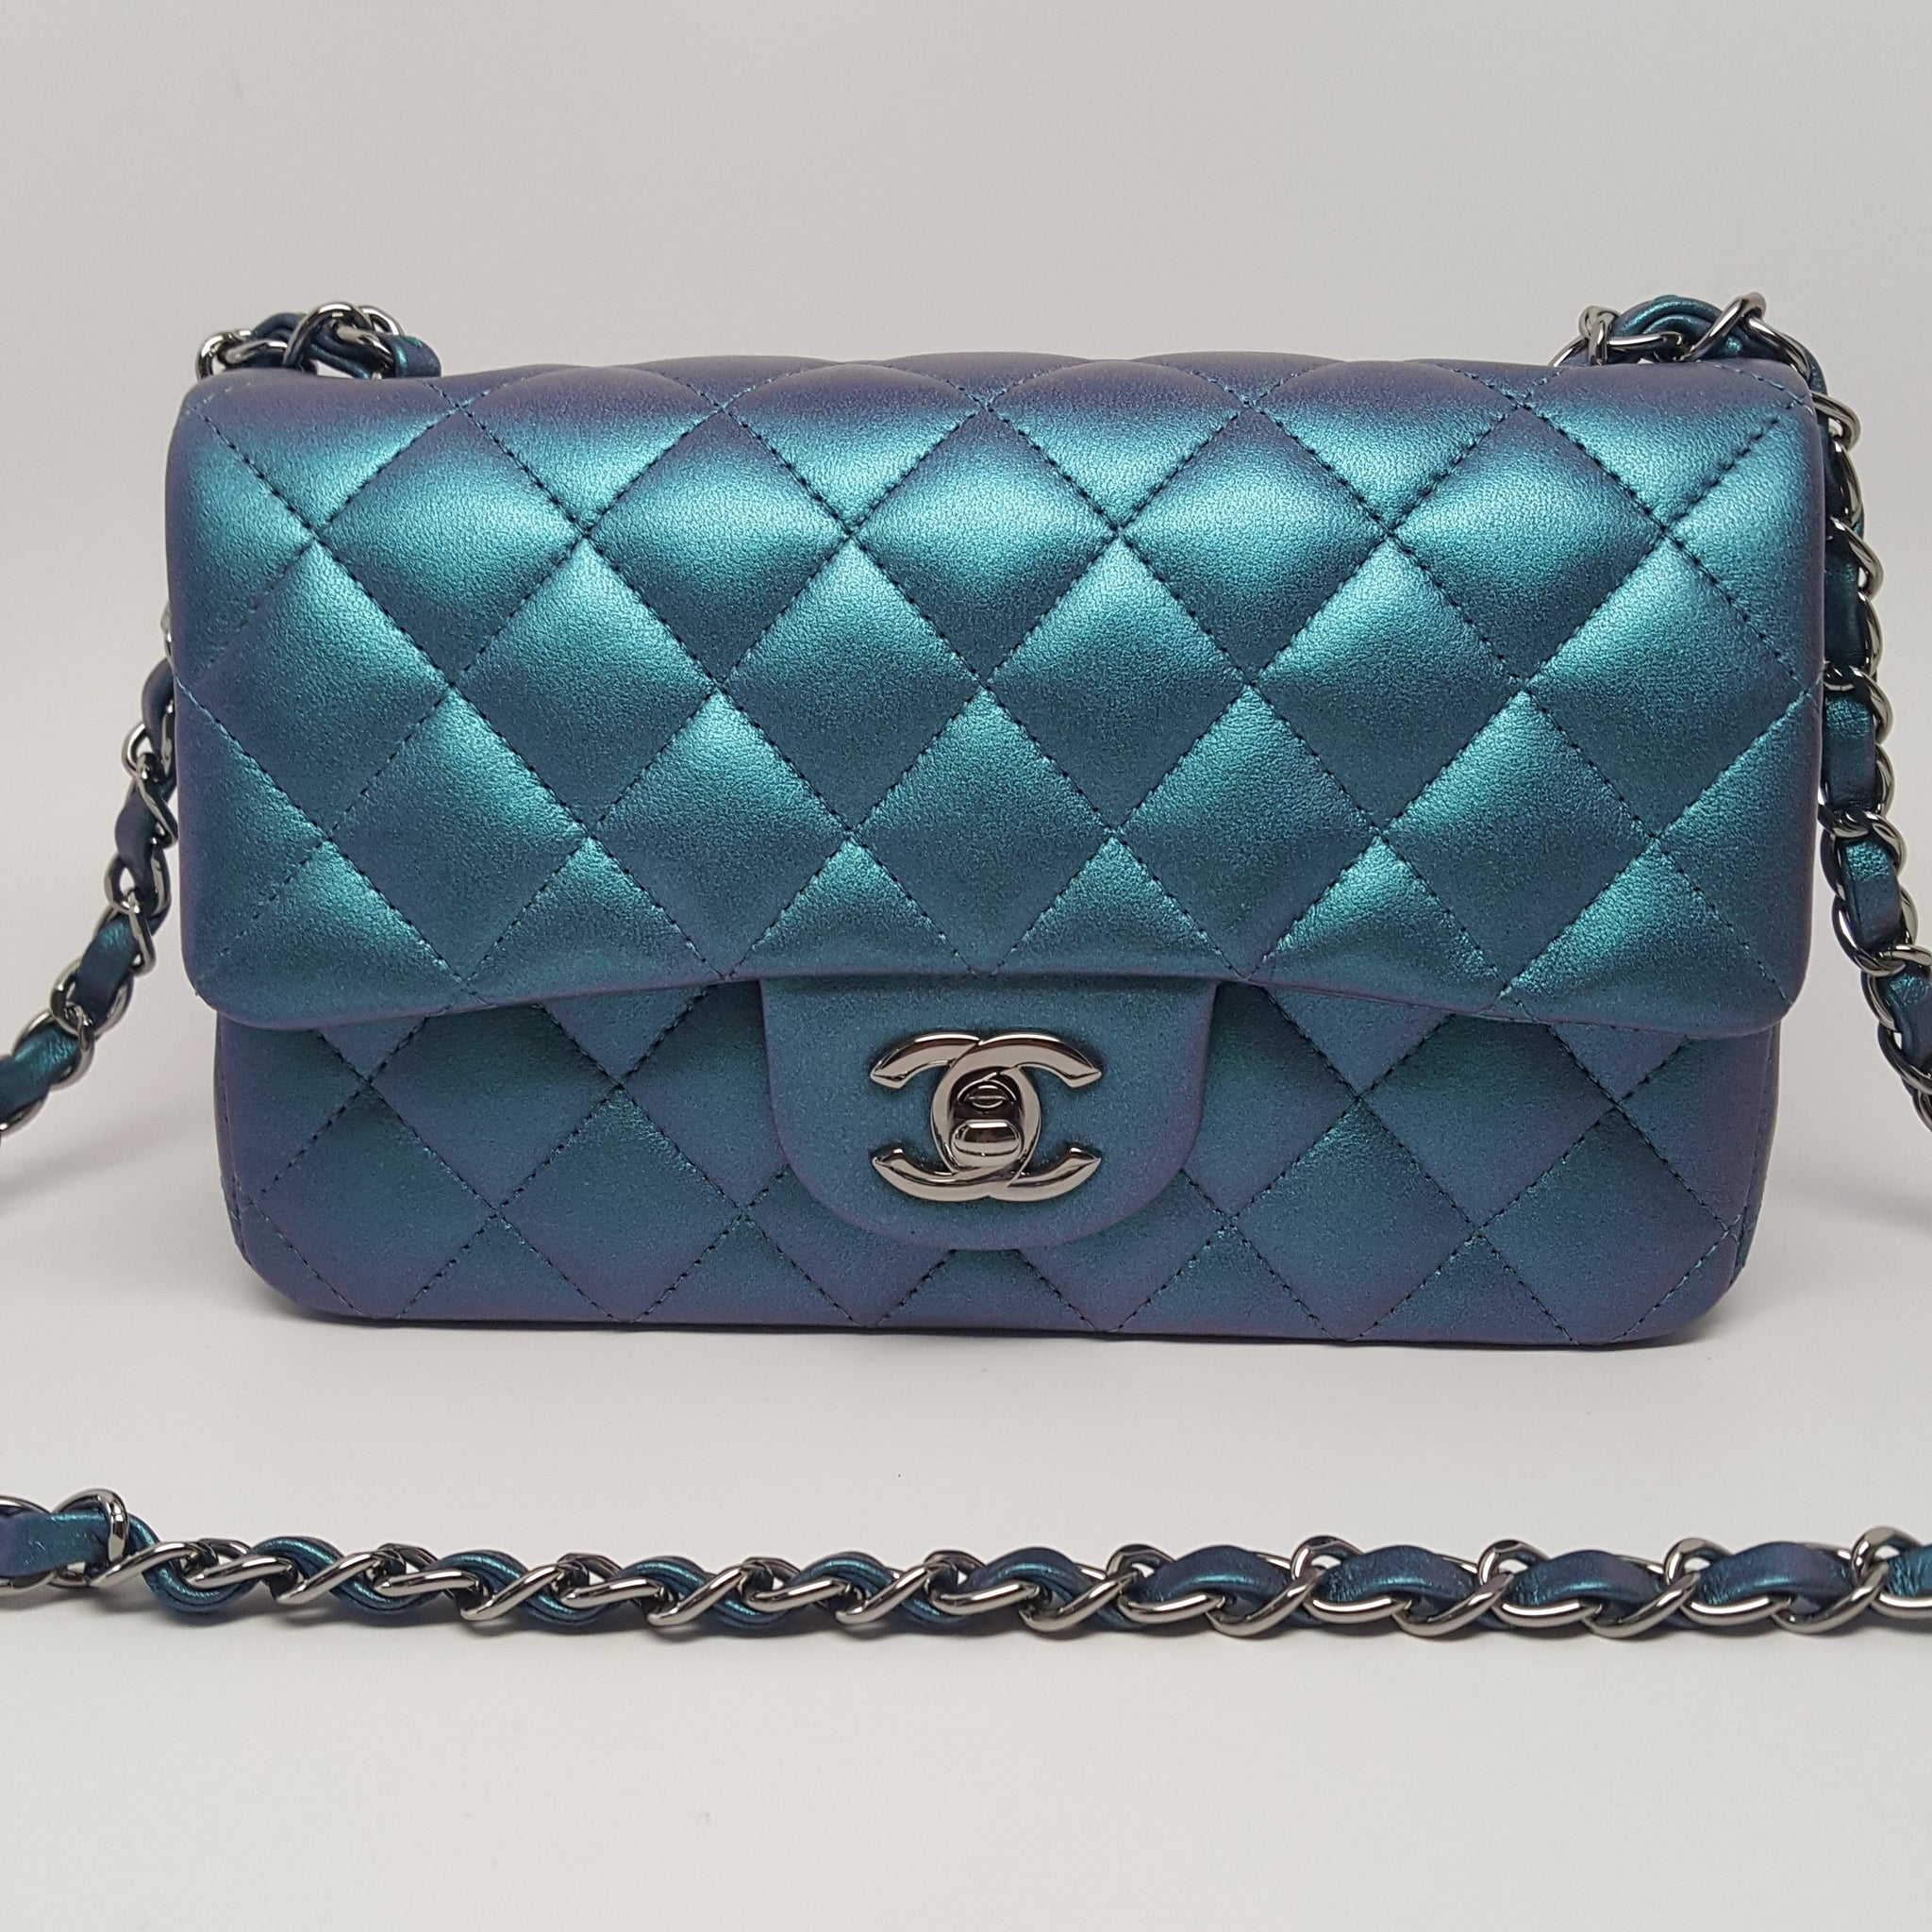 e50fe8360f23 CHANEL CLASSIC METALLIC TURQUOISE QUILTED LAMBSKIN MINI FLAP BAG – Hebster  Boutique